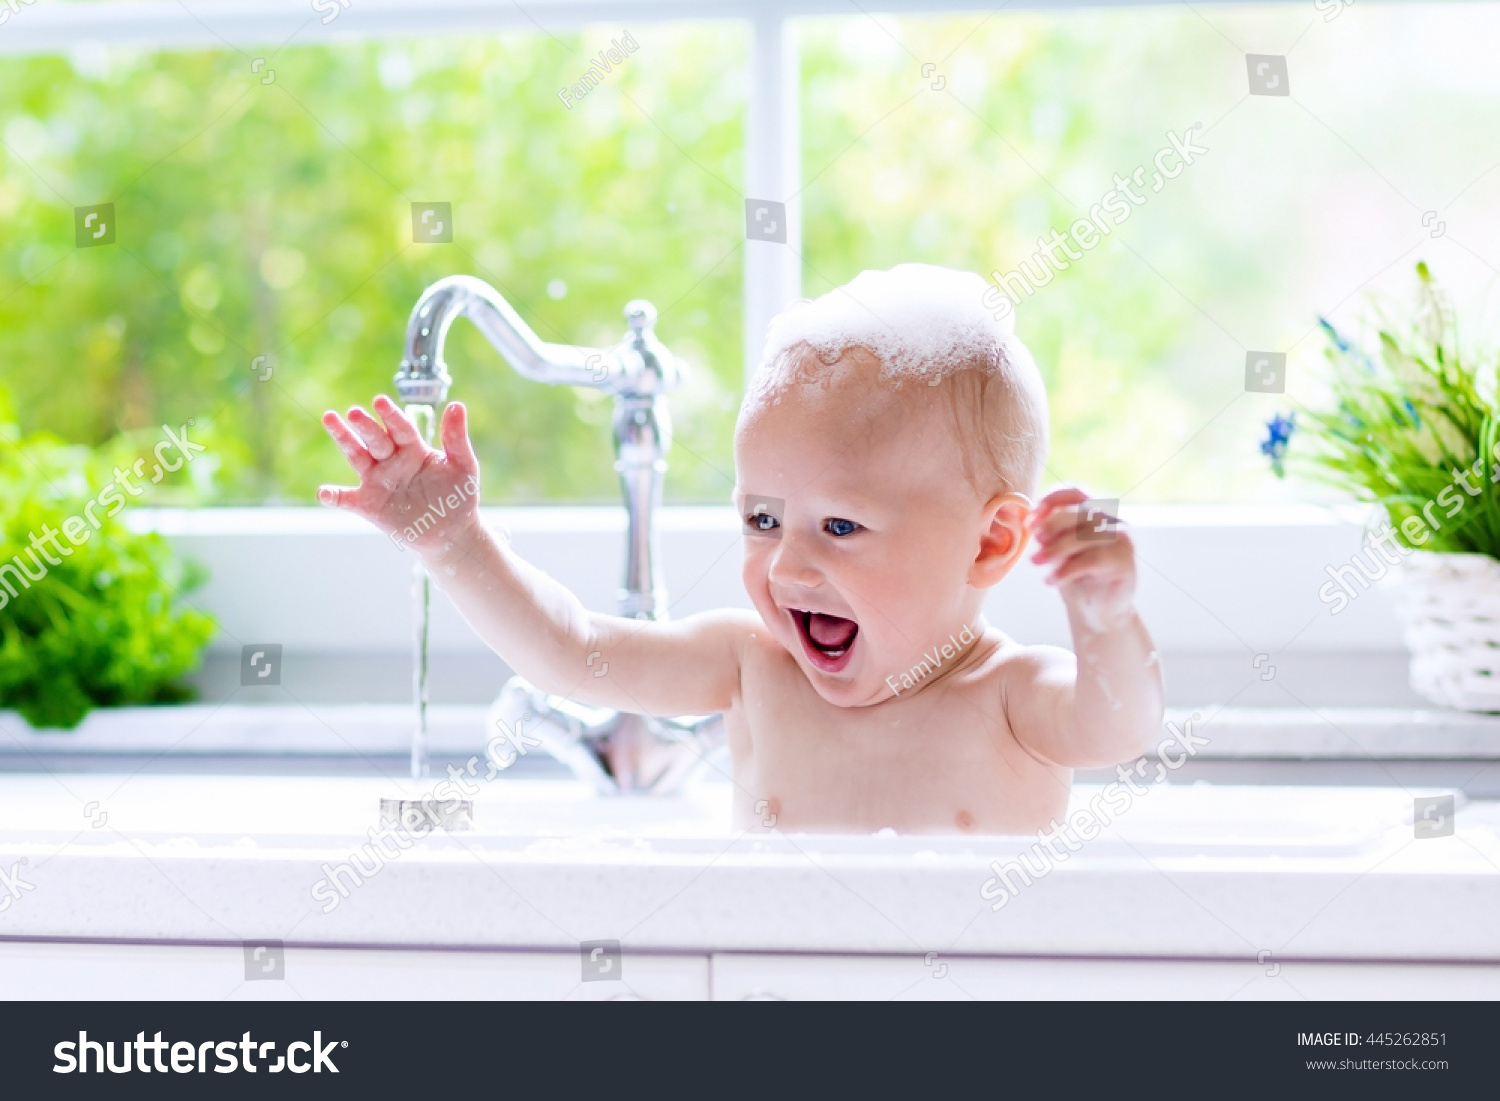 Baby Taking Bath Kitchen Sink Child Stock Photo (Royalty Free ...